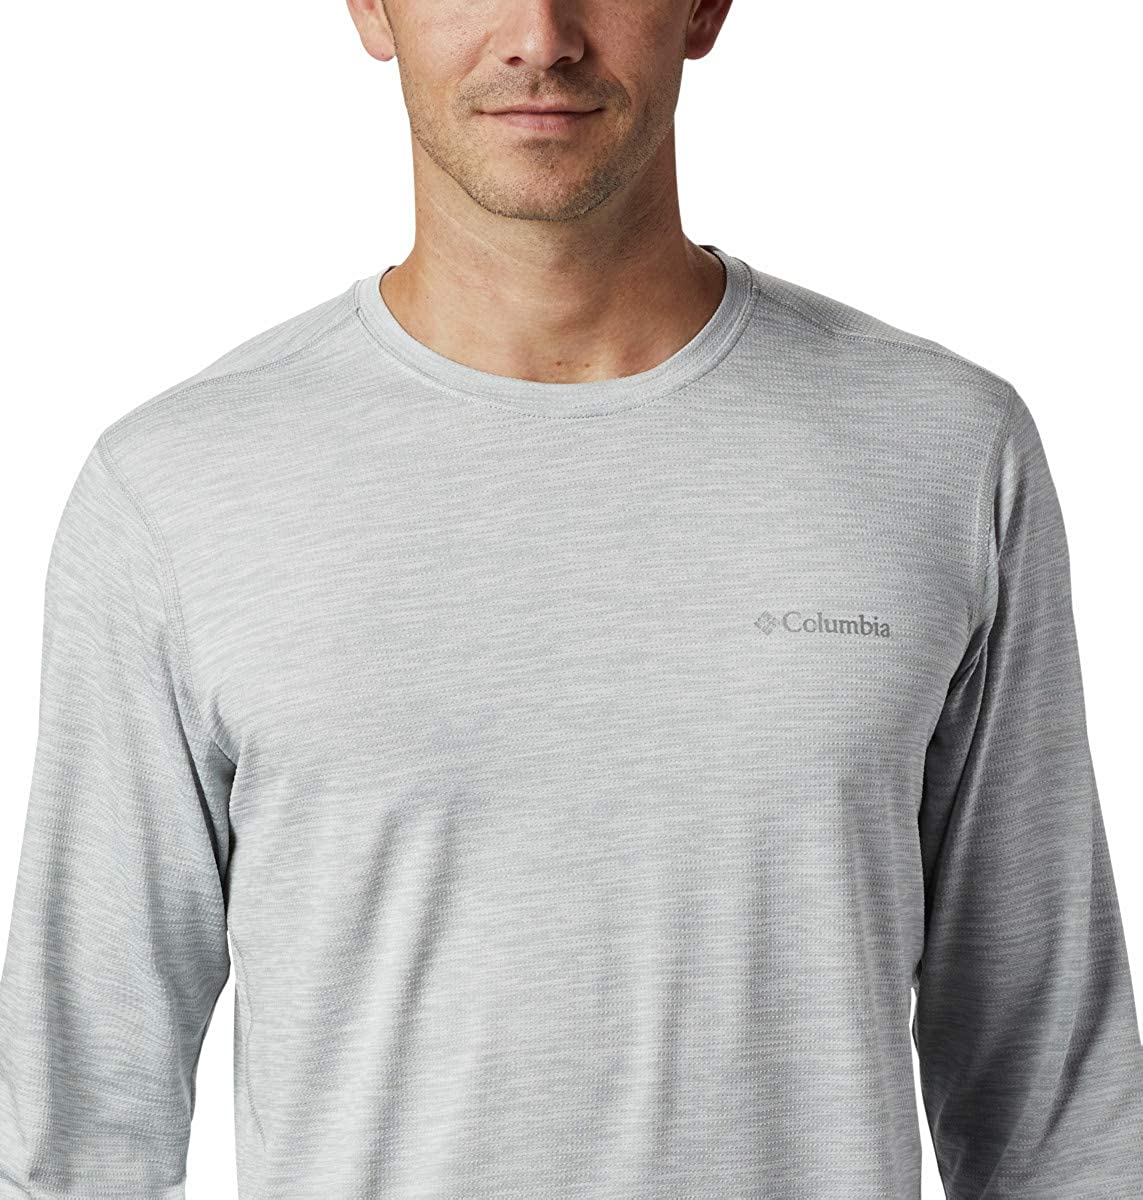 Columbia Mens Deschutes Runner Long Sleeve Shirt